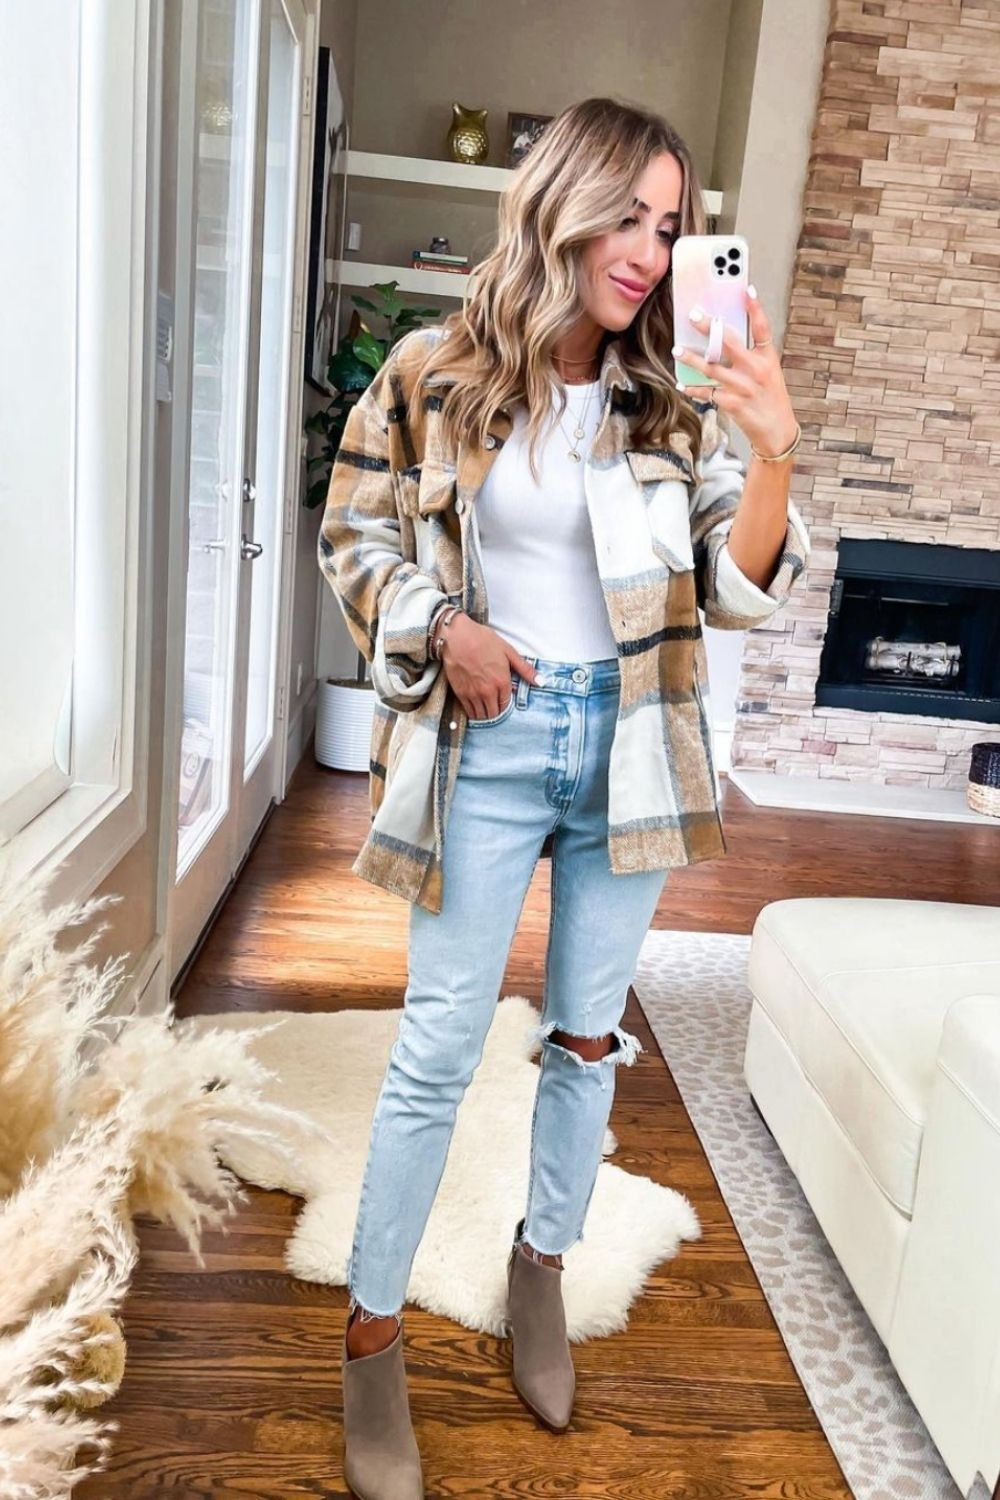 37 Chic Fall outfit ideas 2021 for ladies